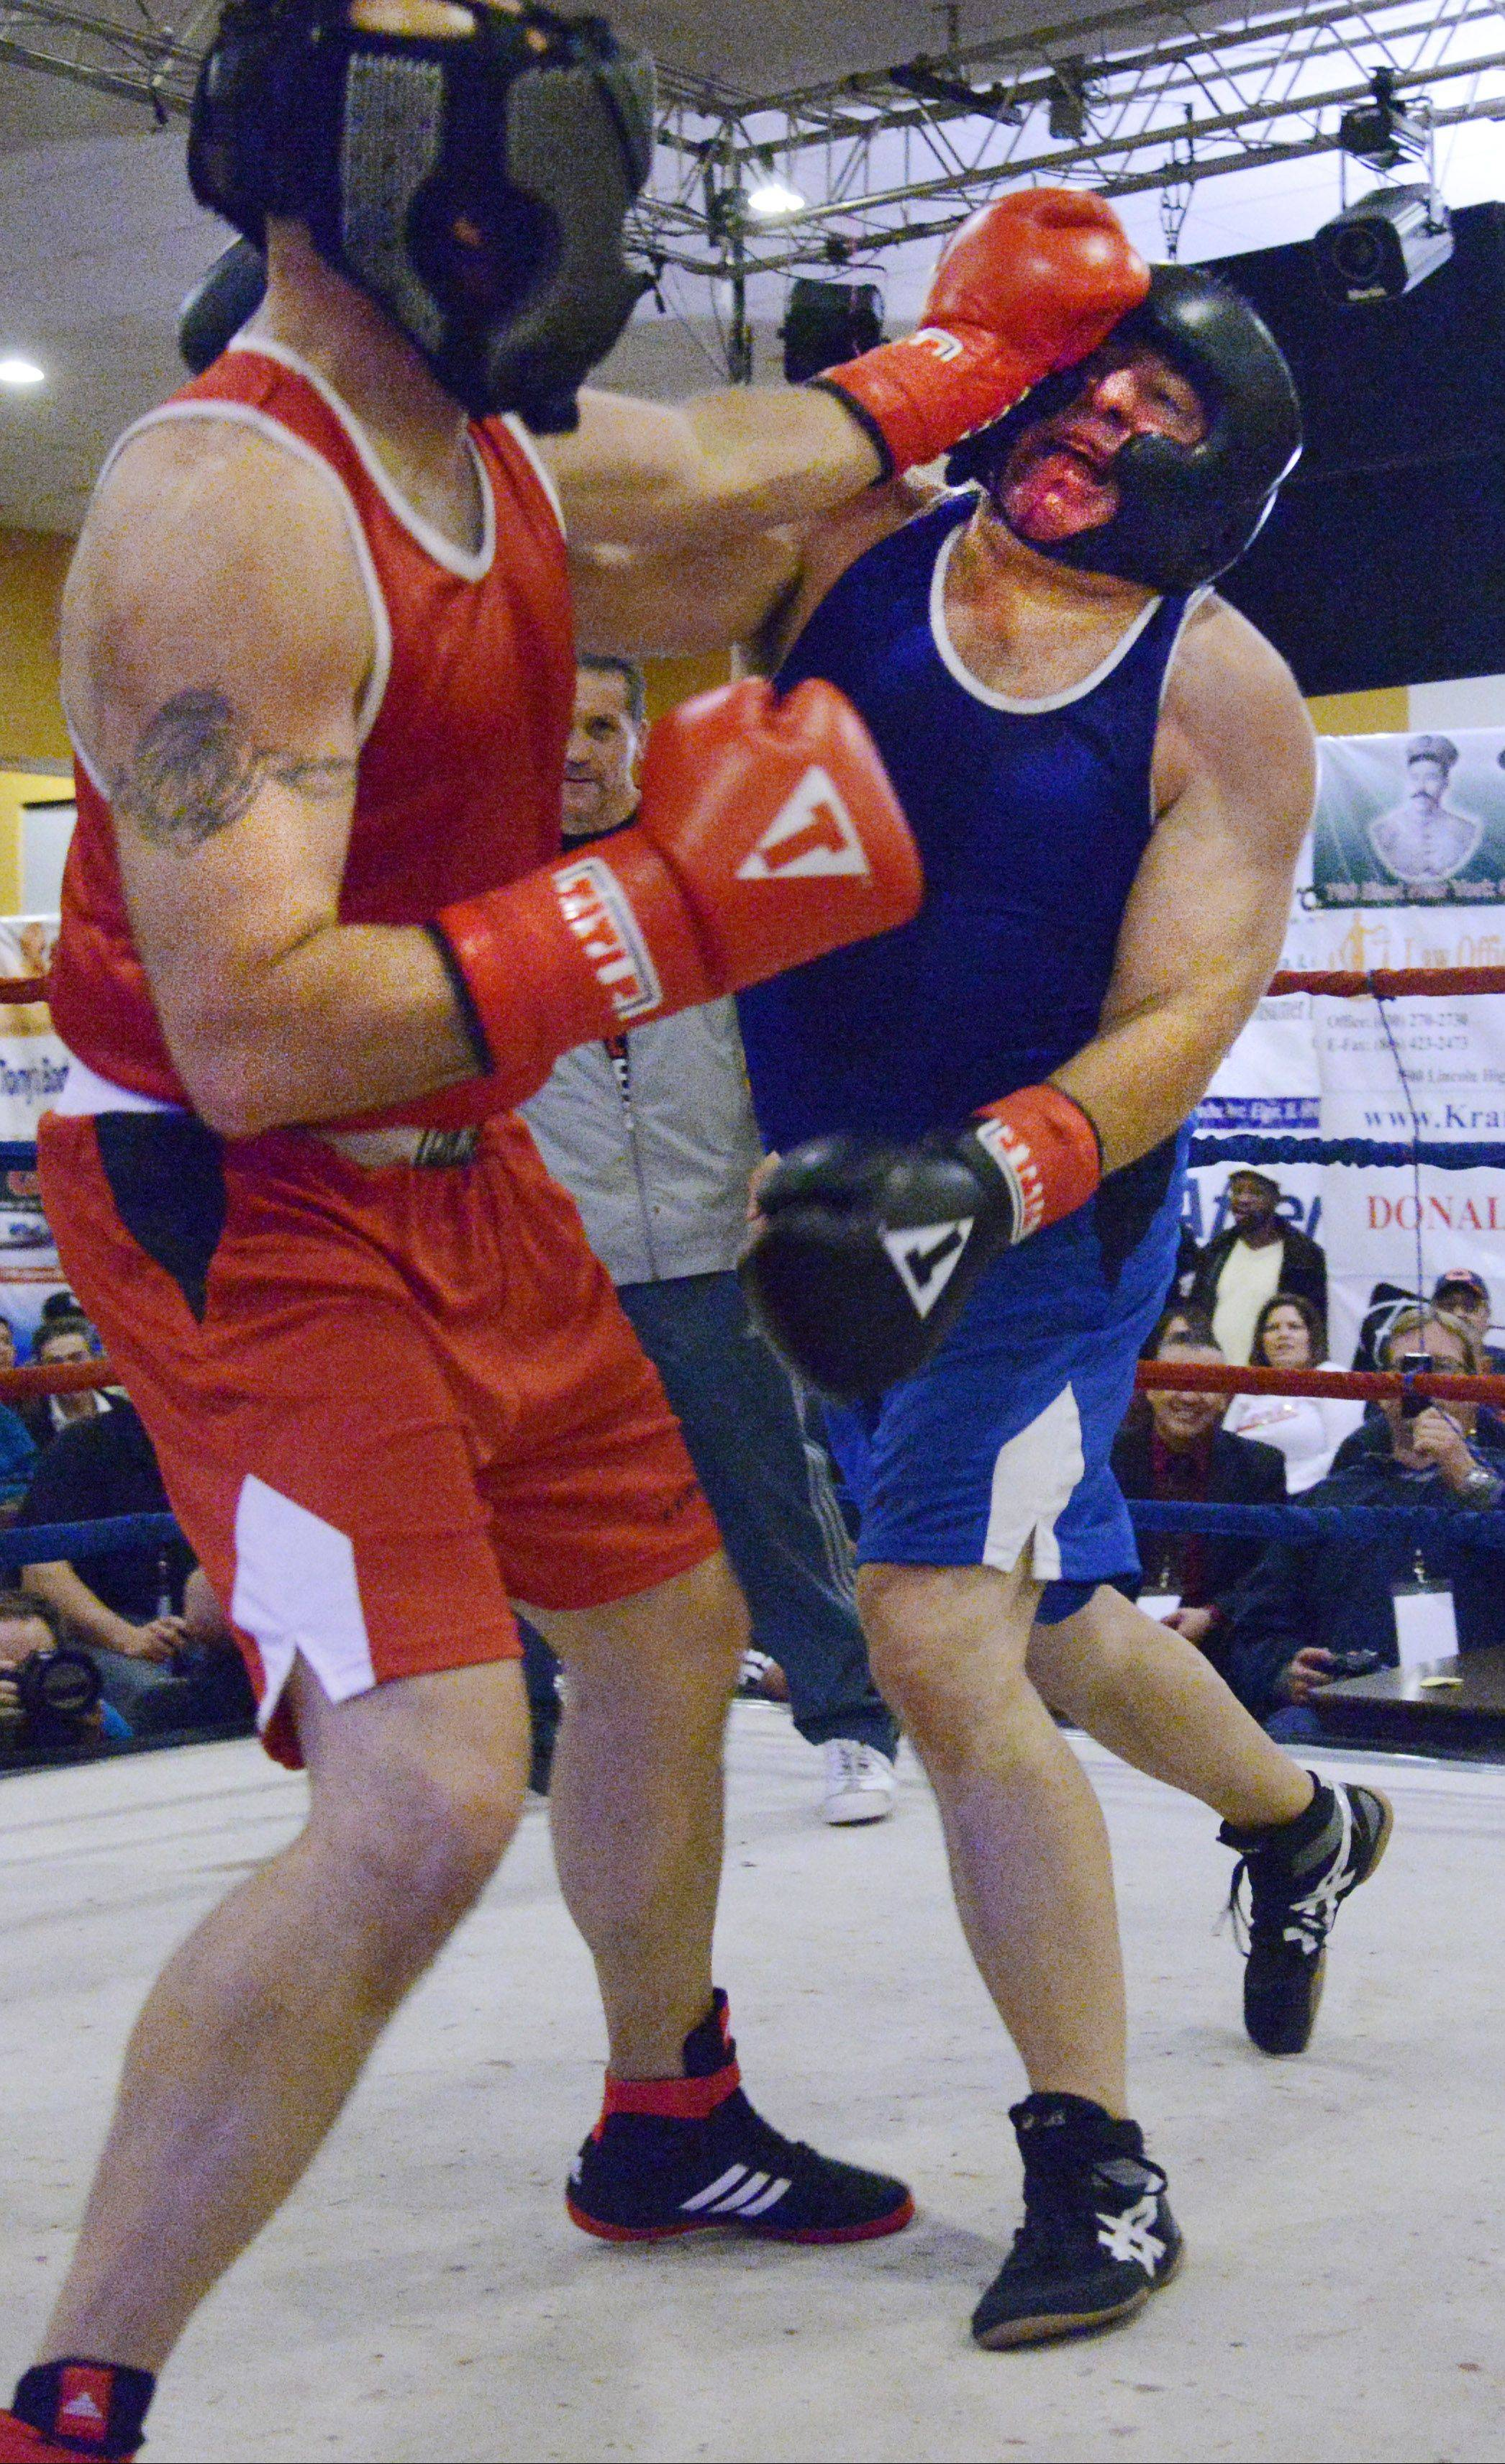 Oswego Police Chief Dwight Baird holds off Kane County Sheriff Pat Perez Sunday night at the 2nd Annual Tuition Knockout police boxing event in Aurora. Baird scored a technical knockout against Perez.